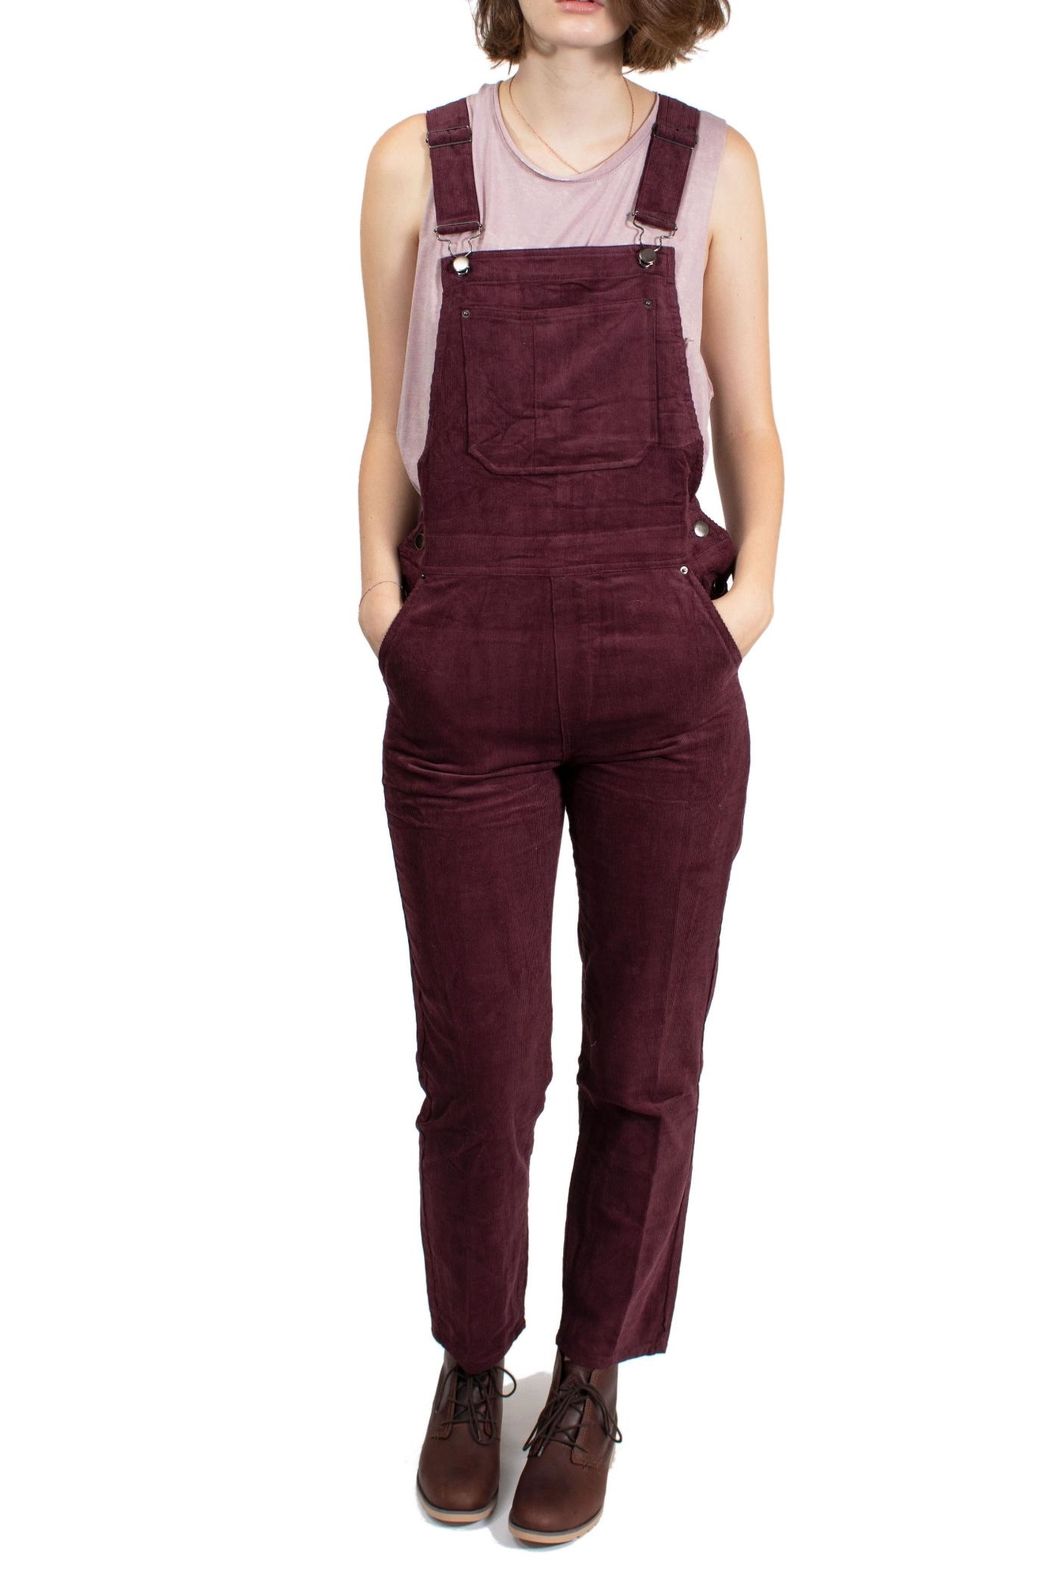 32f96d3b28d Mod Ref Corduroy Overalls from Mississippi by Wilai Boutique ...